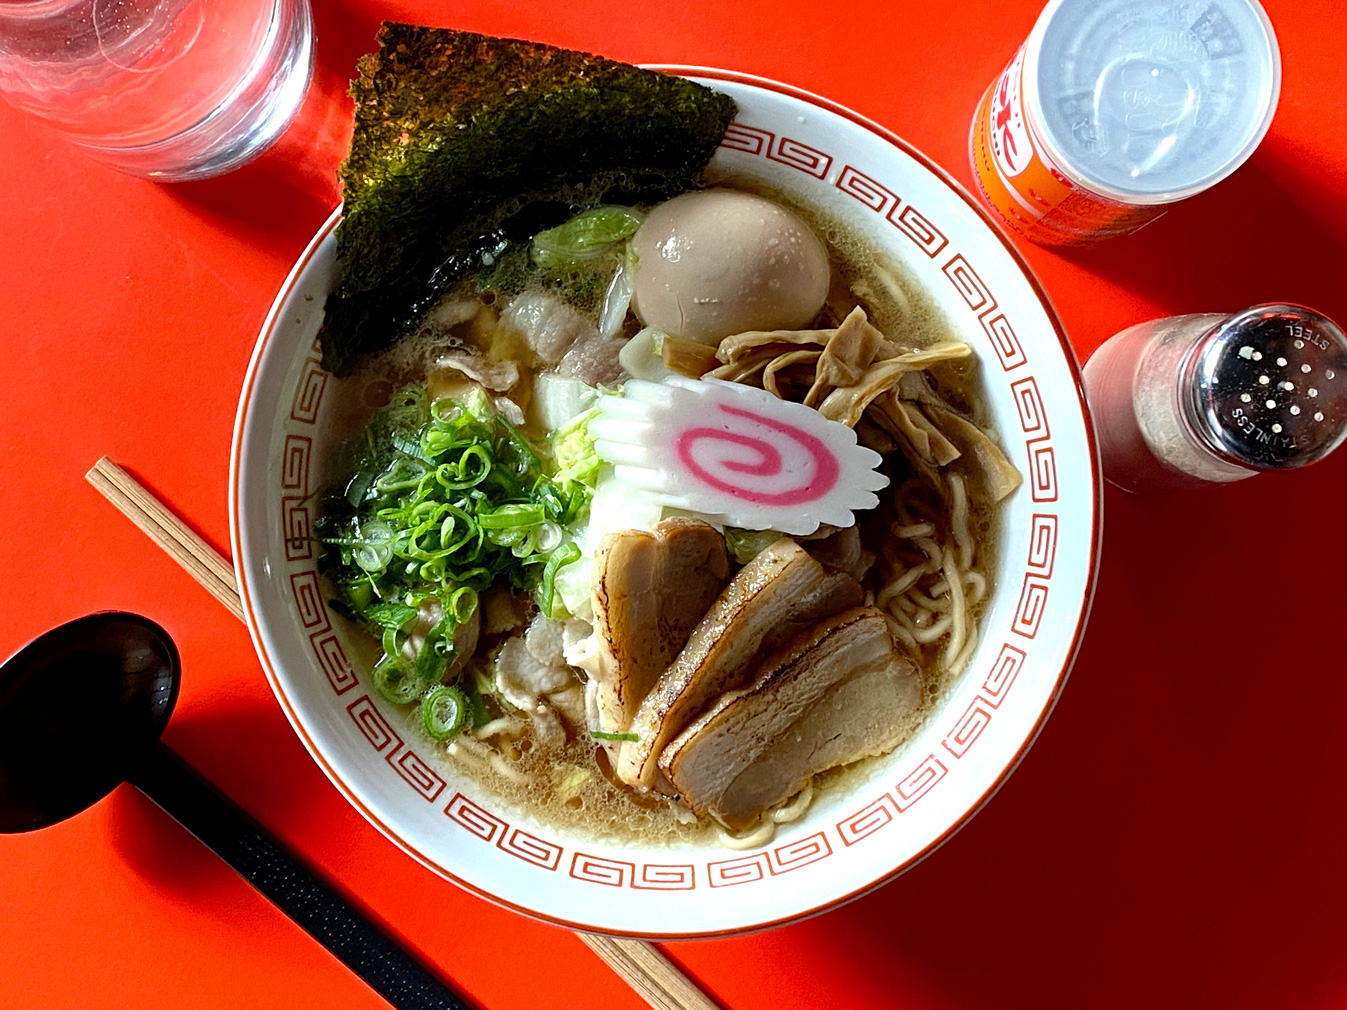 London's retro Showaken ramen bar offers a taste of 1970s Tokyo